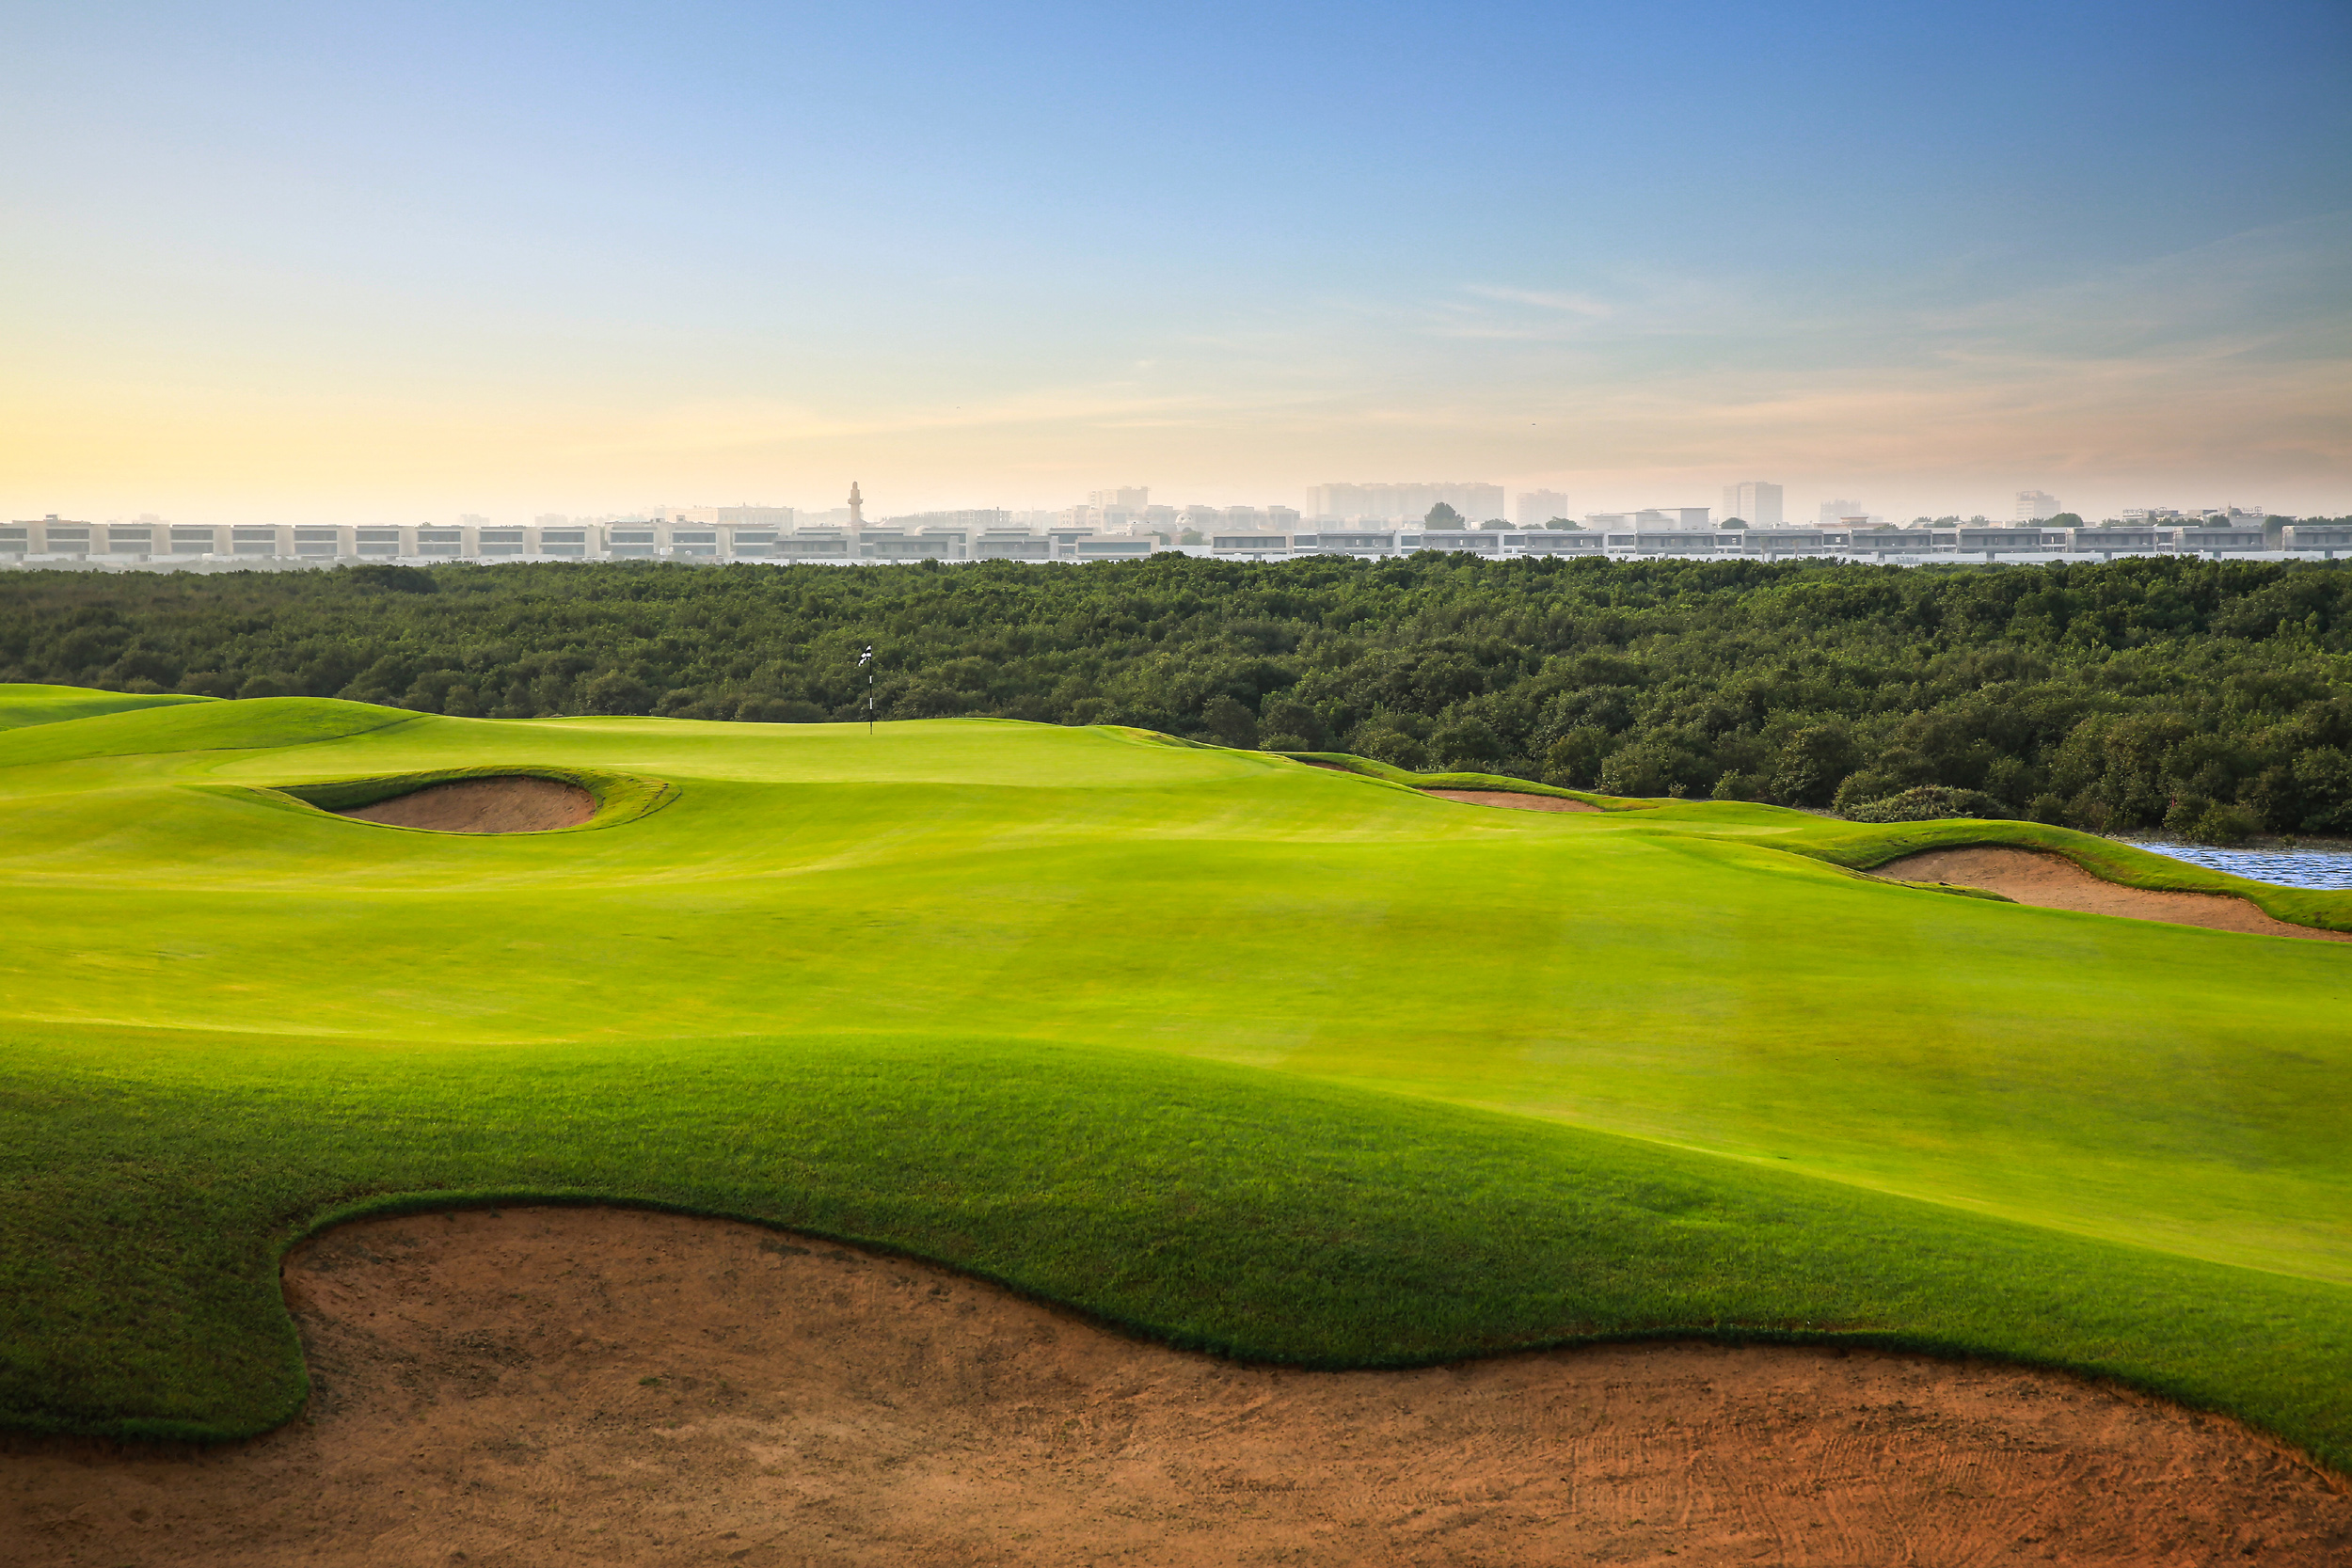 Al Zorah Golf Club is the United Arab Emirates' first new championship venue for nearly six years